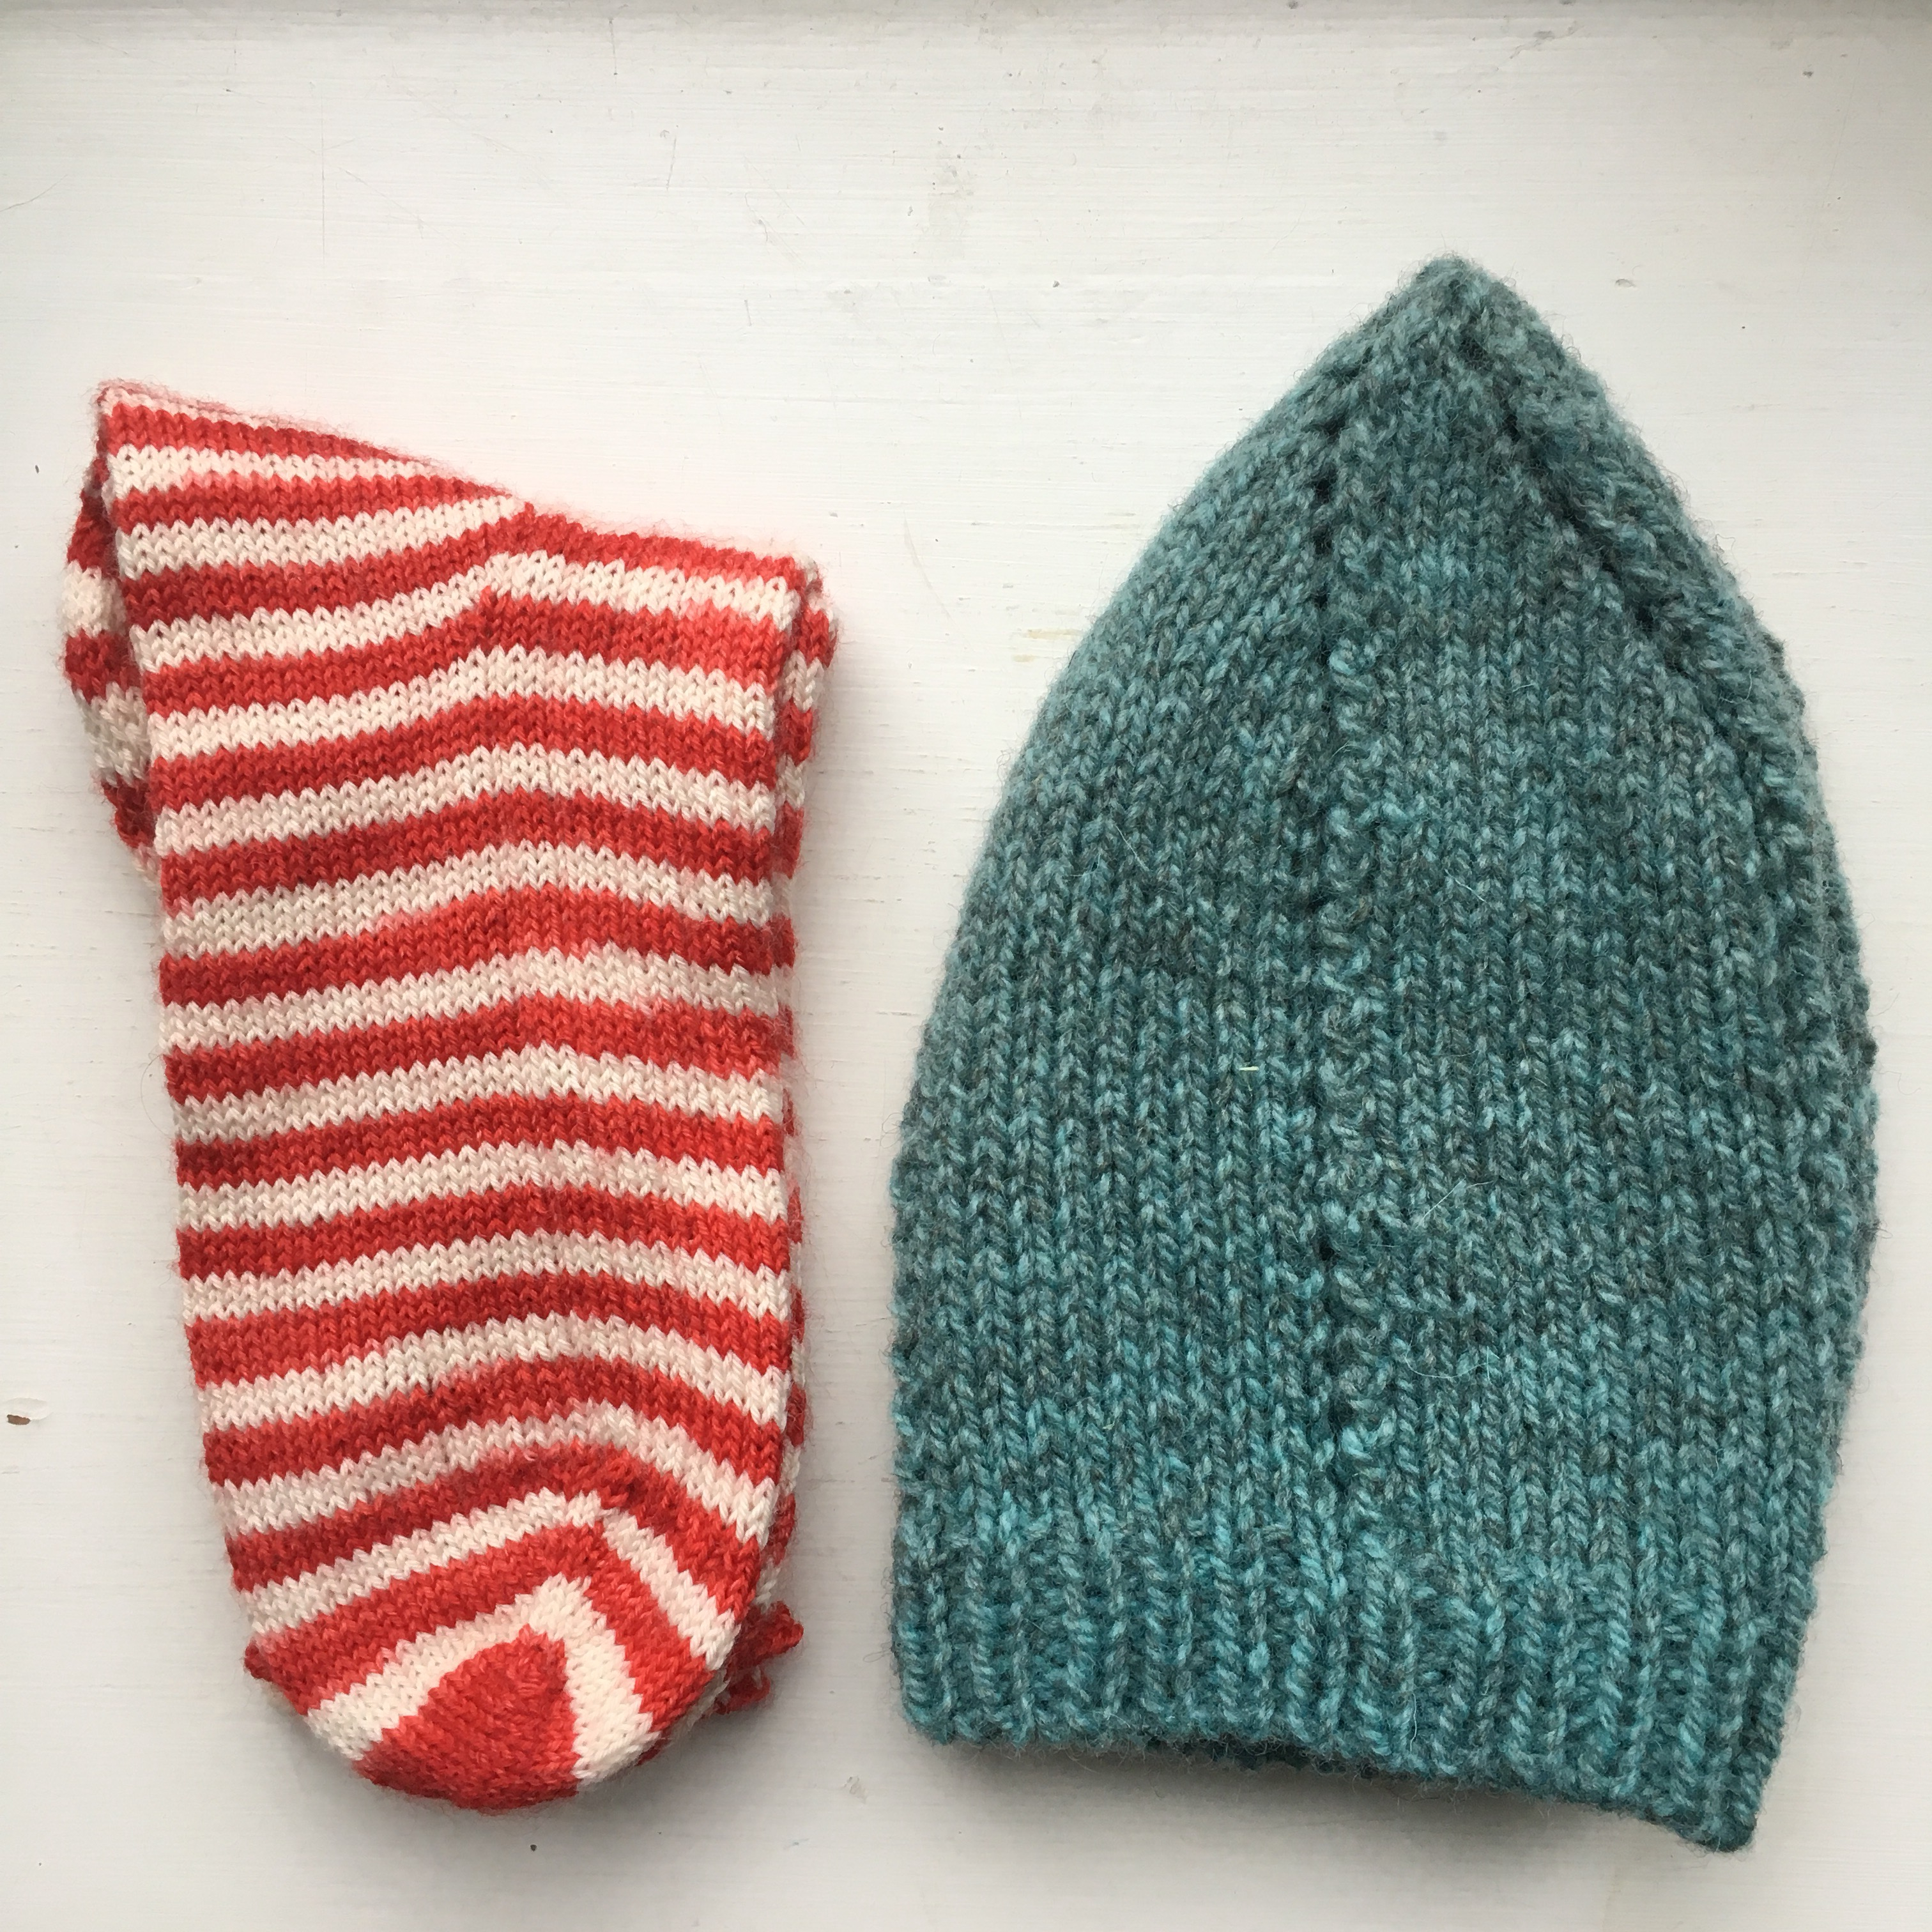 09996bf3e7f The forth project mentioned above are some Tin Can Knits Lumberjack Socks  I m making in a gorgeous British Falkland Islands Merino Silk double knit  ...